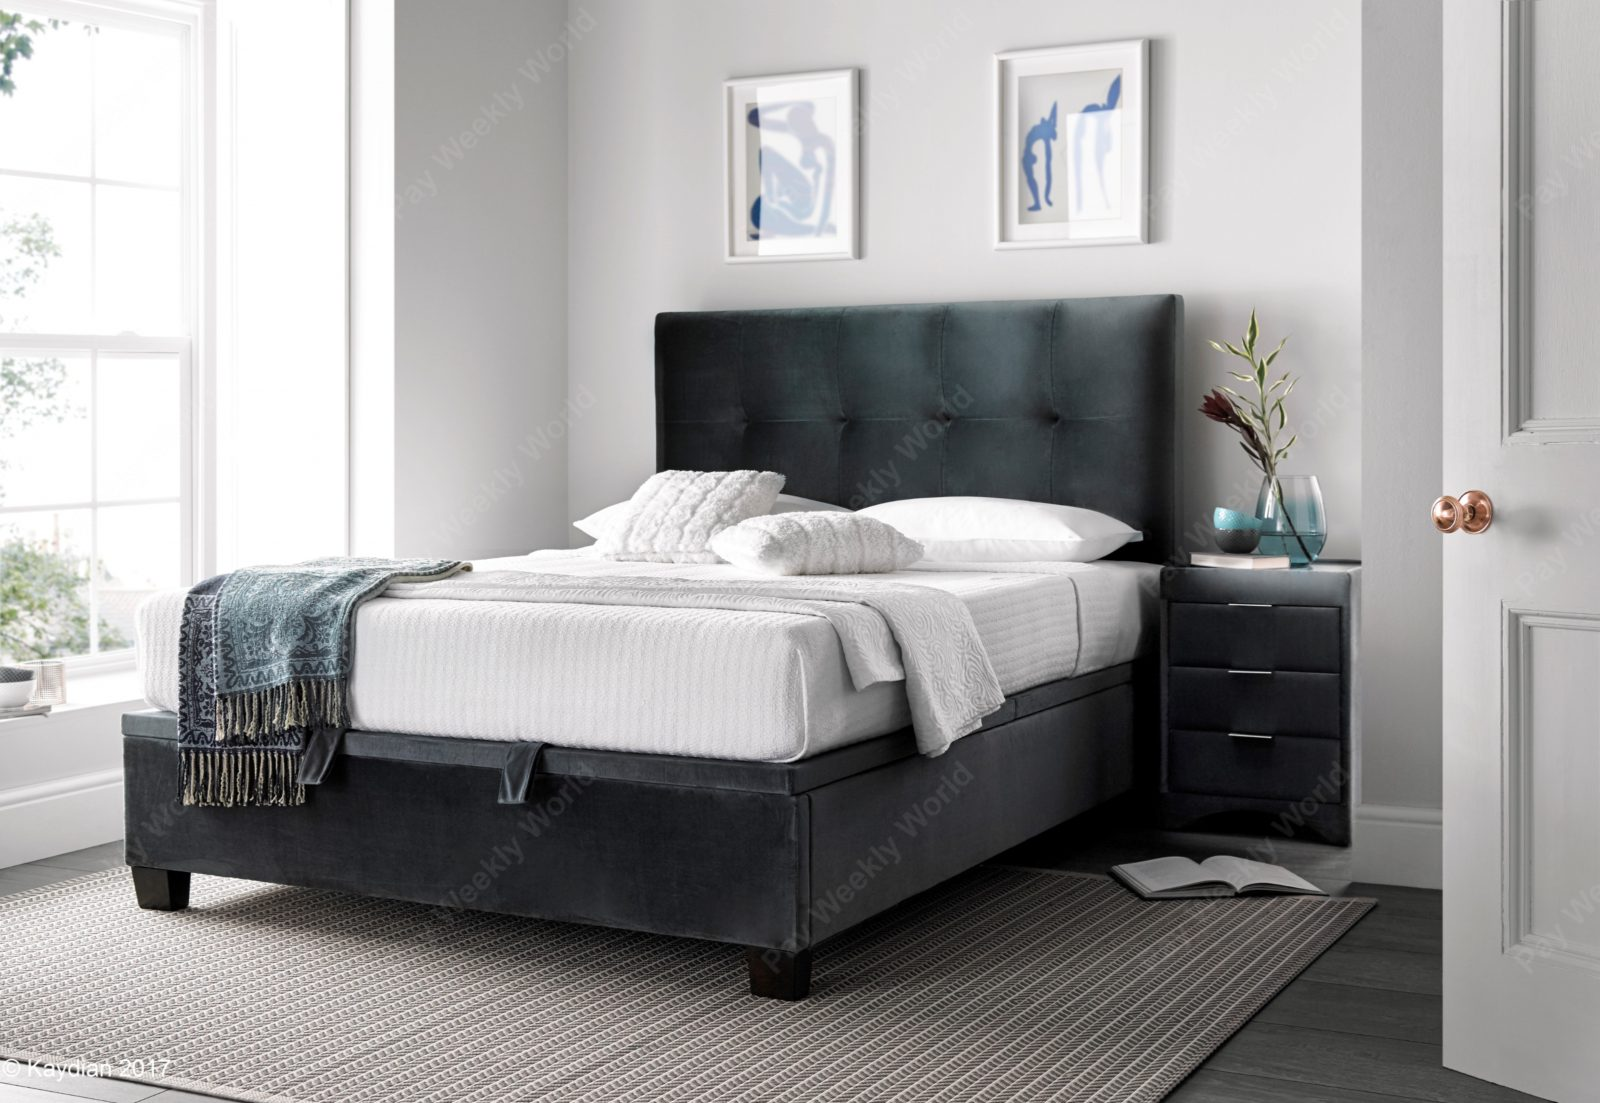 Walkworth Ottoman Cliffe Bed Frame – Double